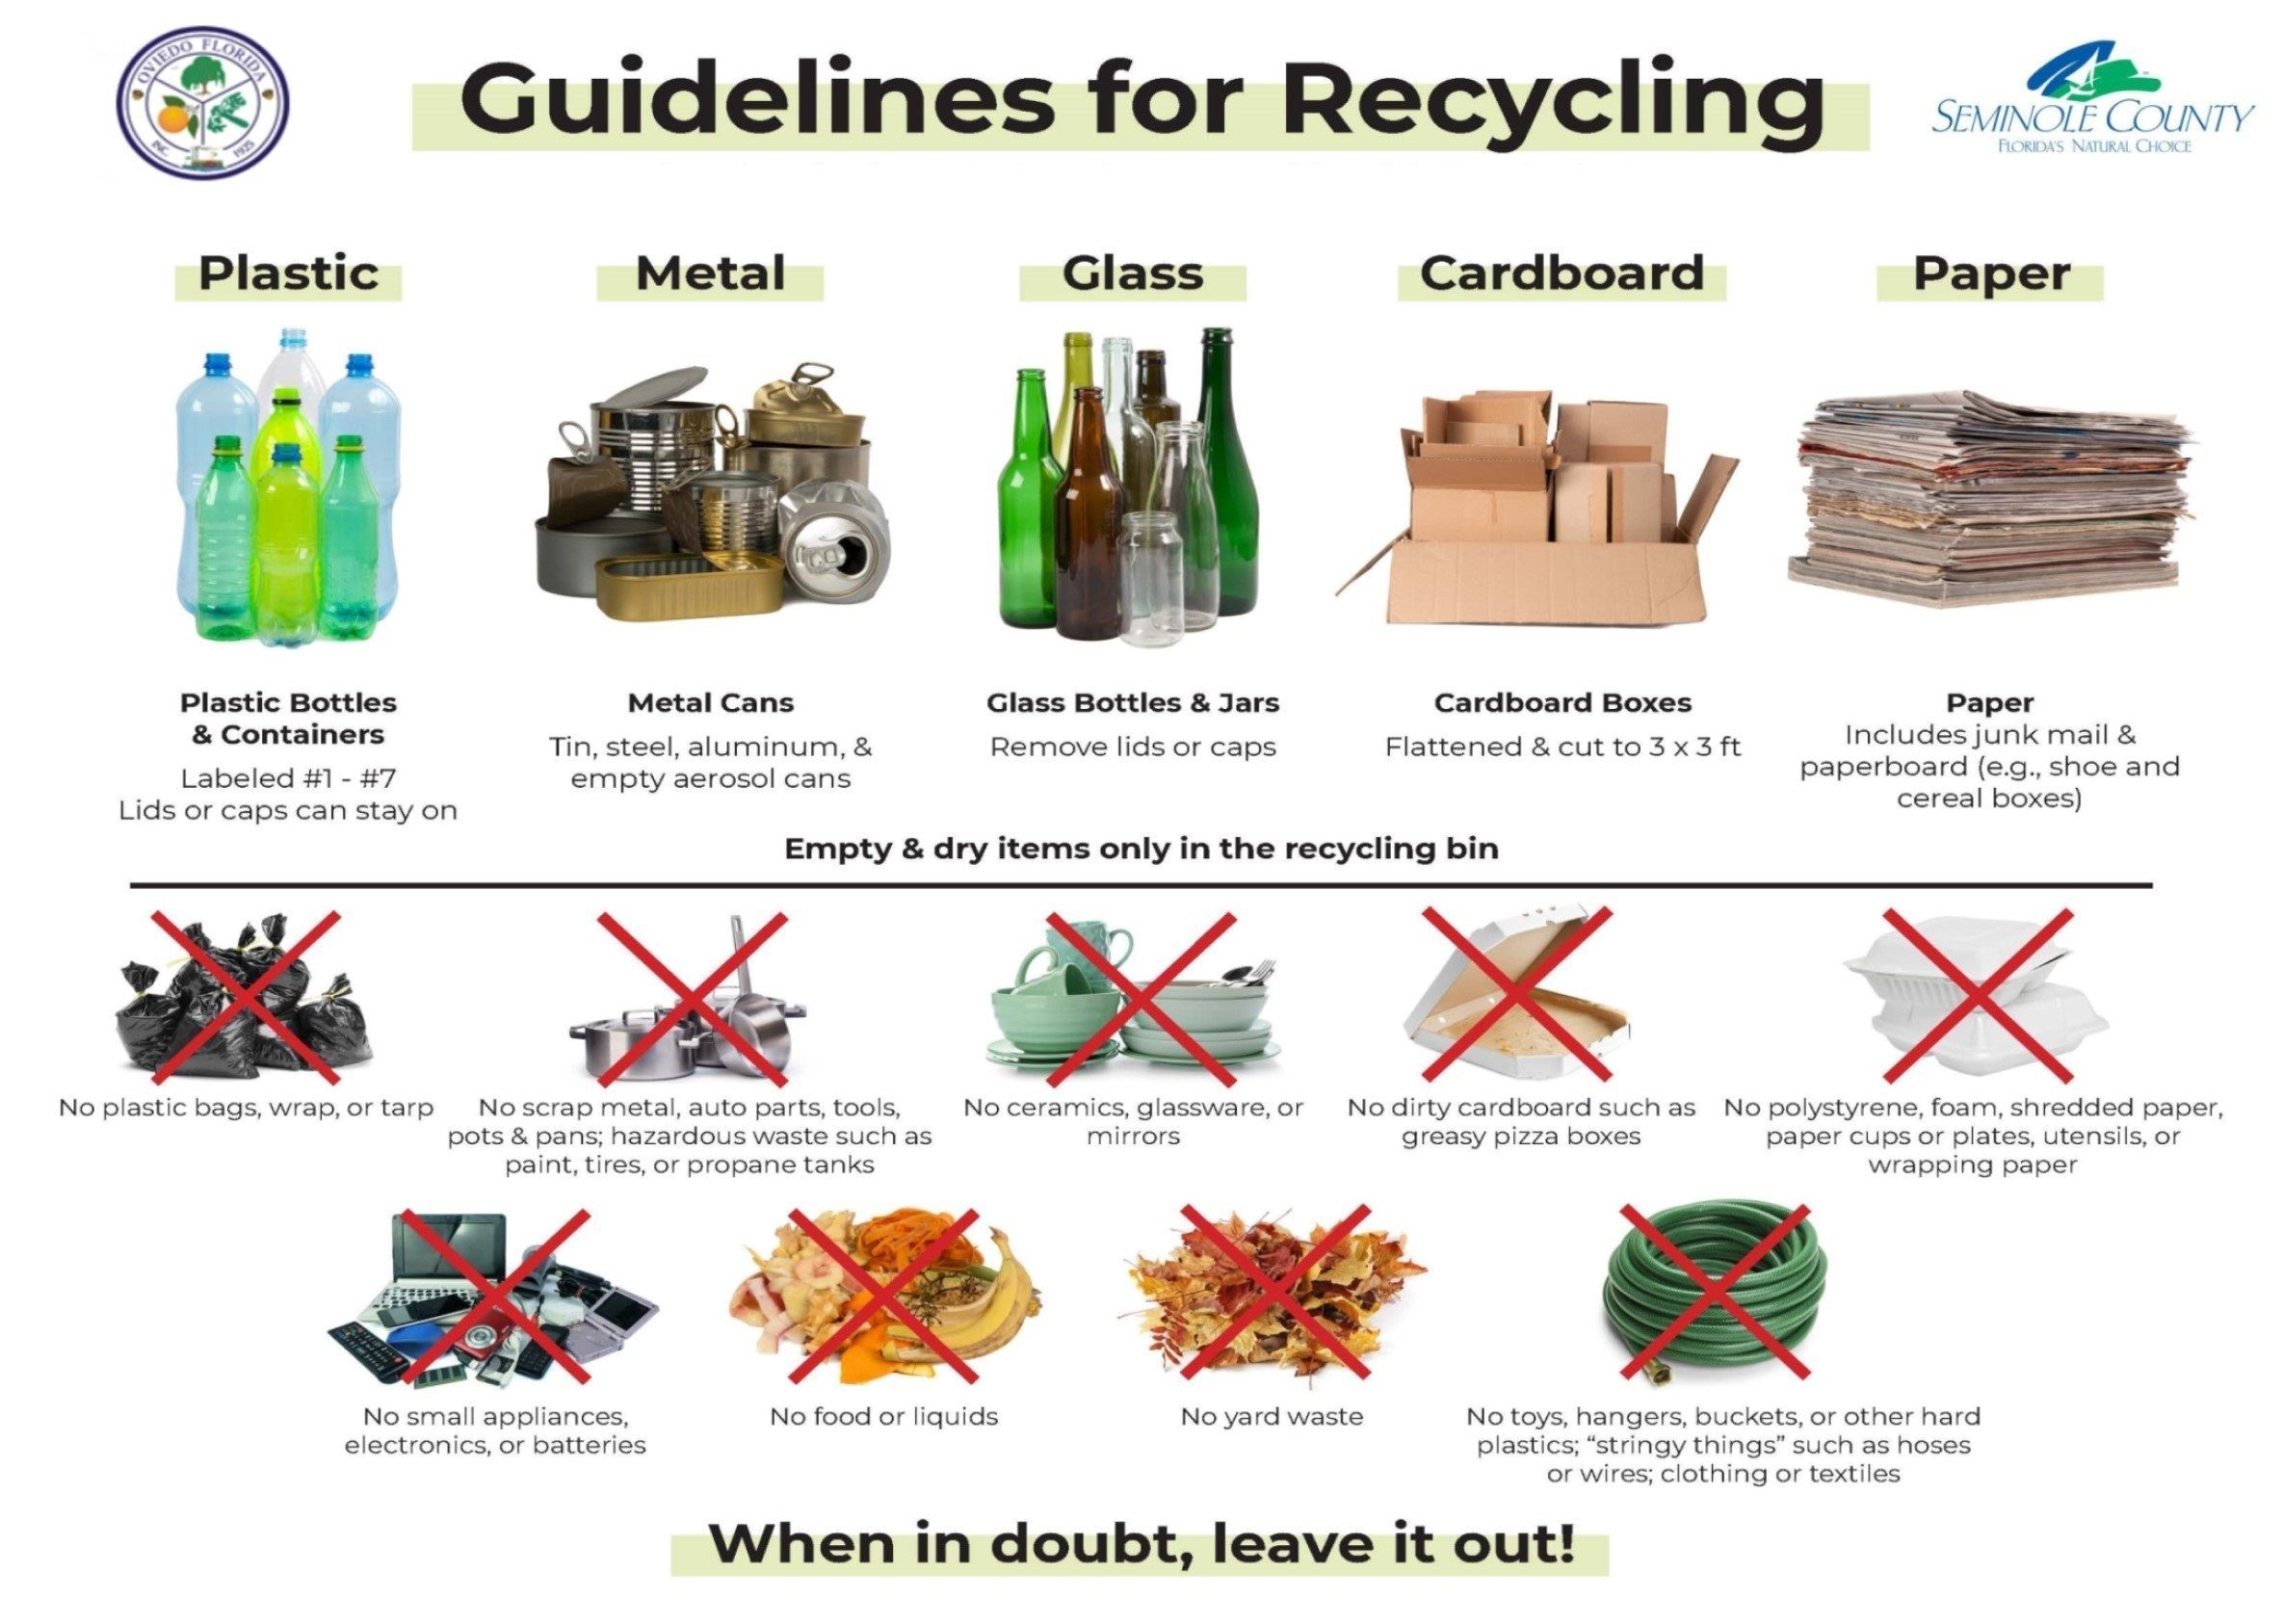 Image showing what should and should not be recycled.